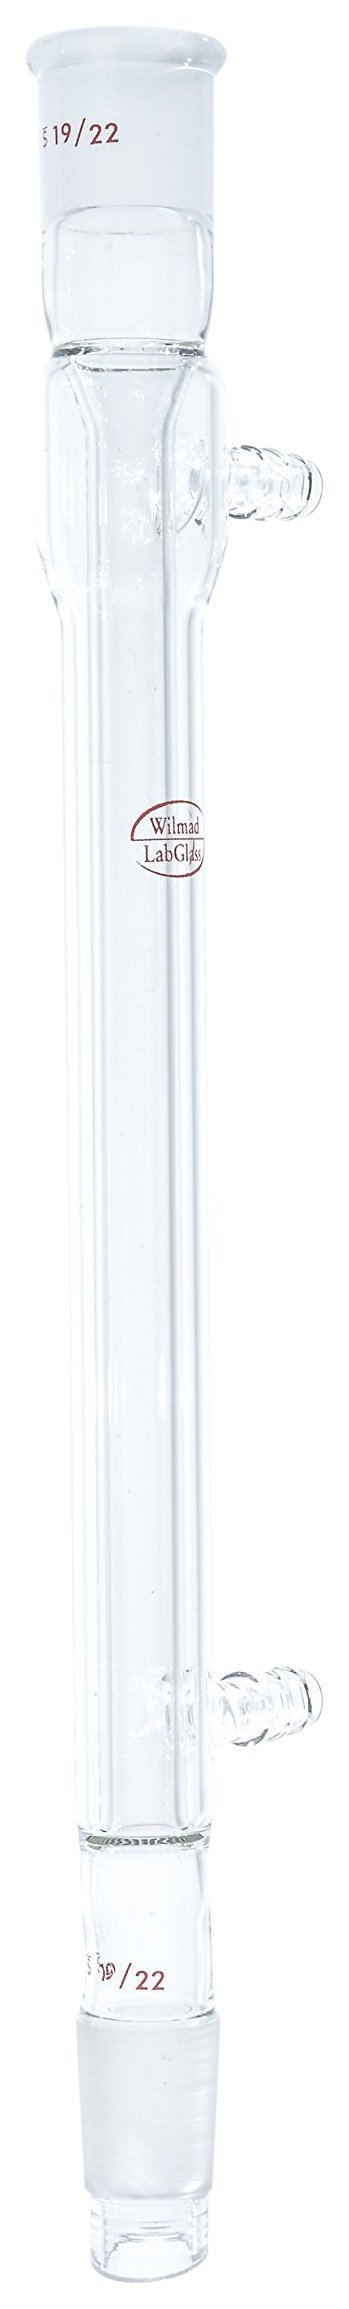 Wilmad LK-590-102 Borosilicate Glass West Condenser, 19/22 Joint, 190 mm Length by SP Scienceware